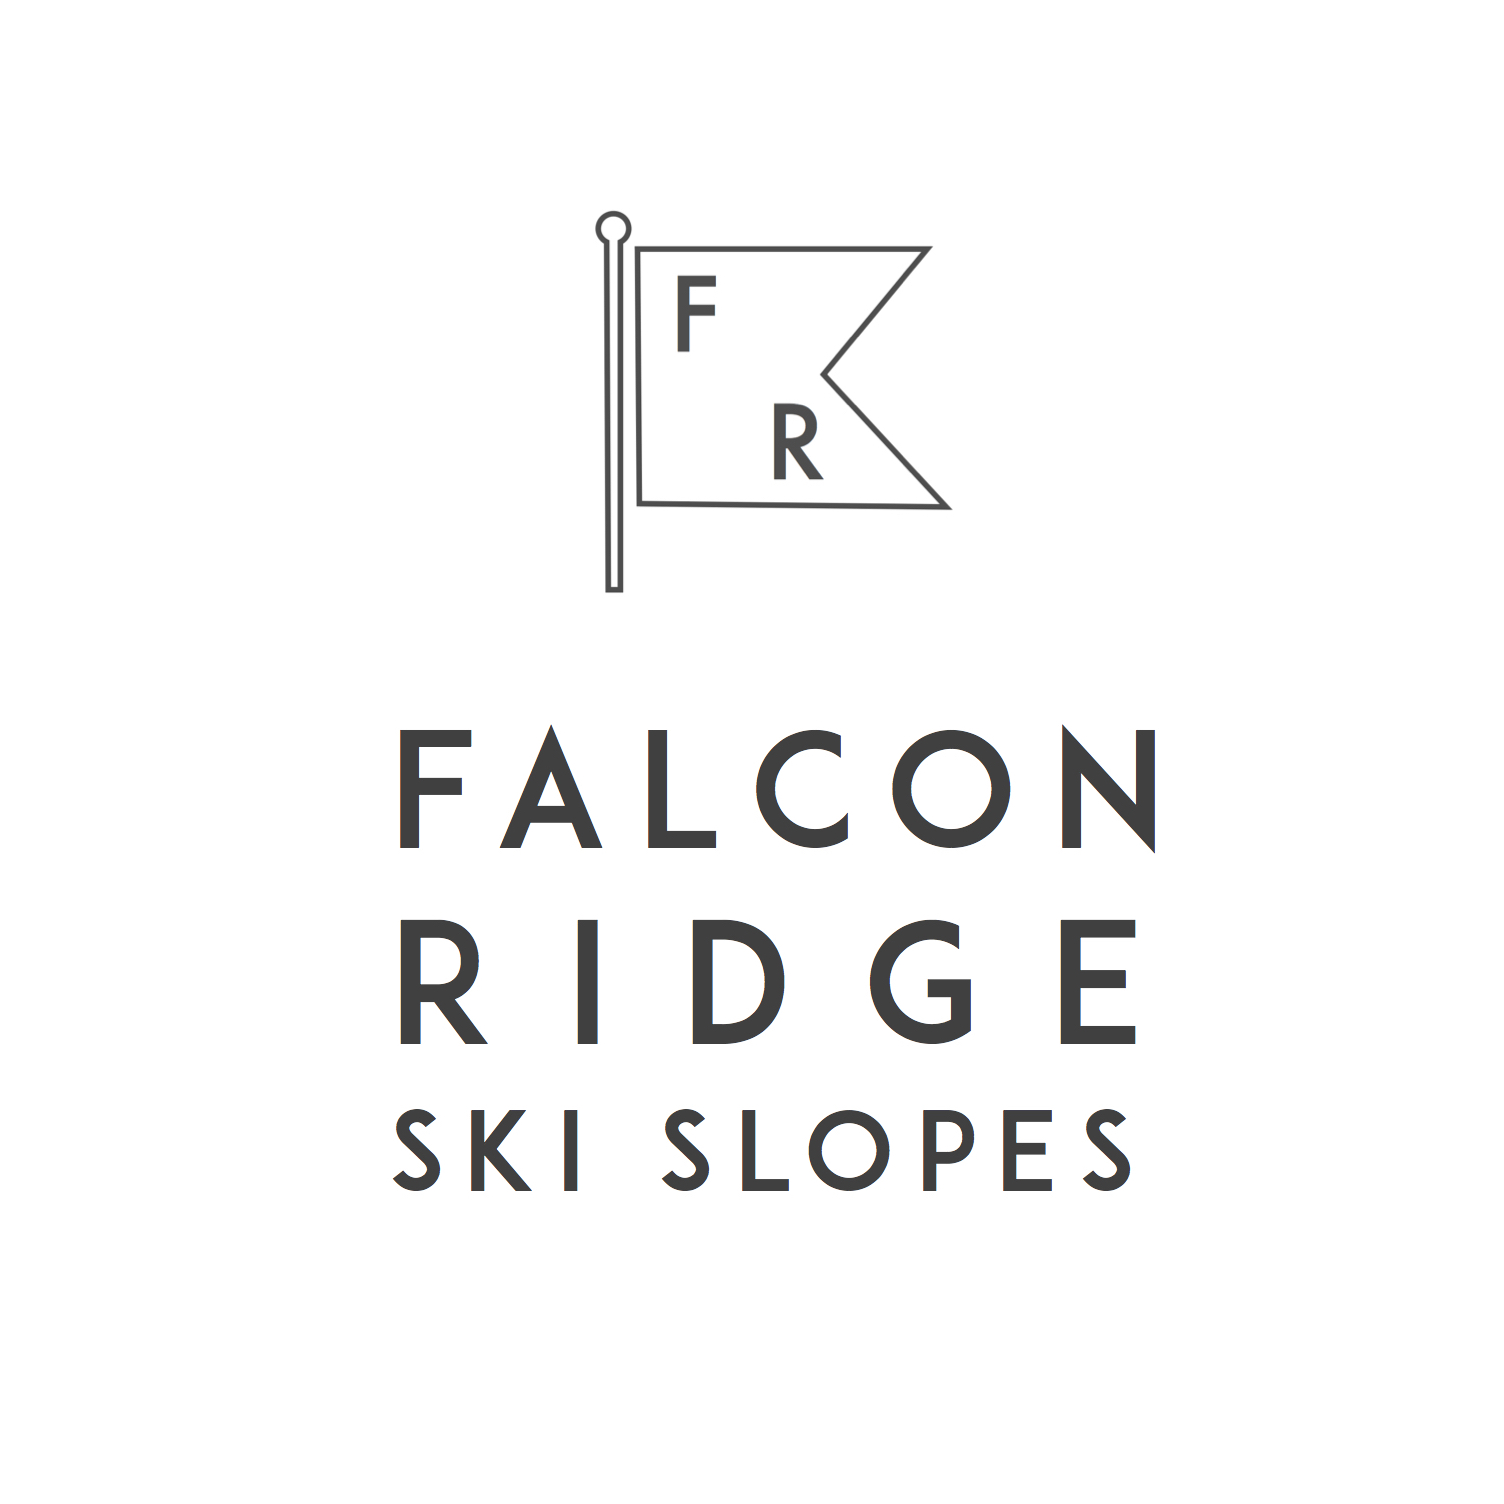 falcon_ridge_logo.jpg